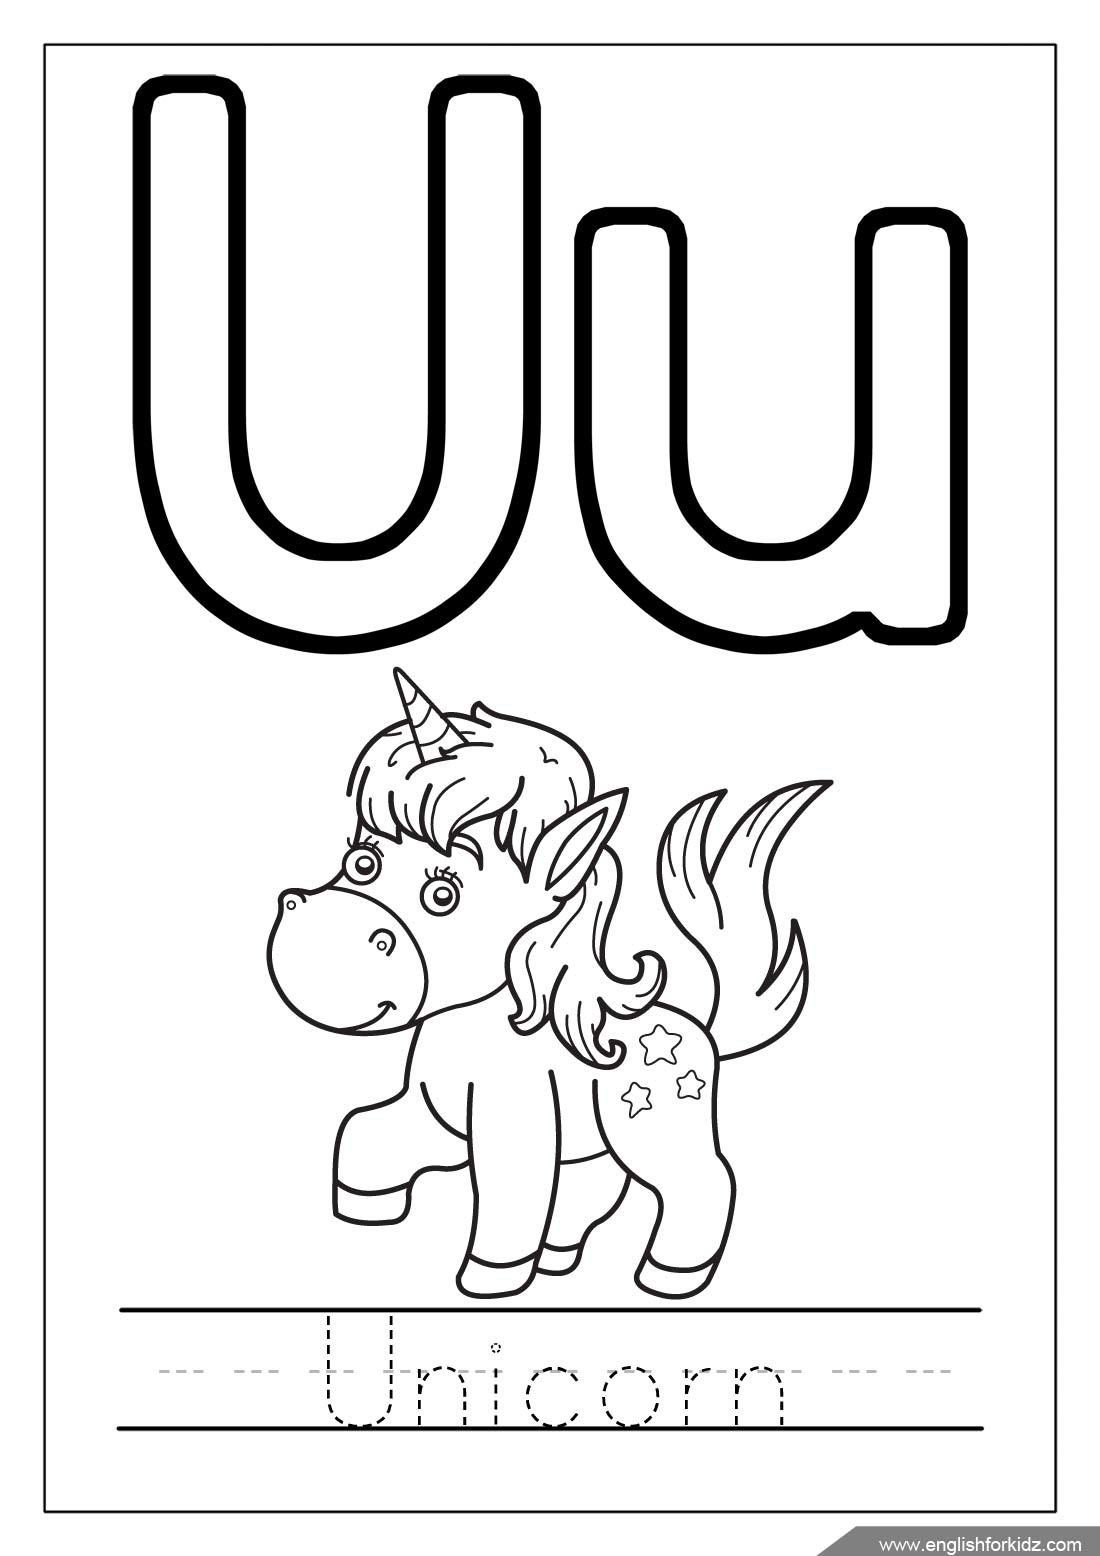 Alphabet Coloring Pages Letters U Z